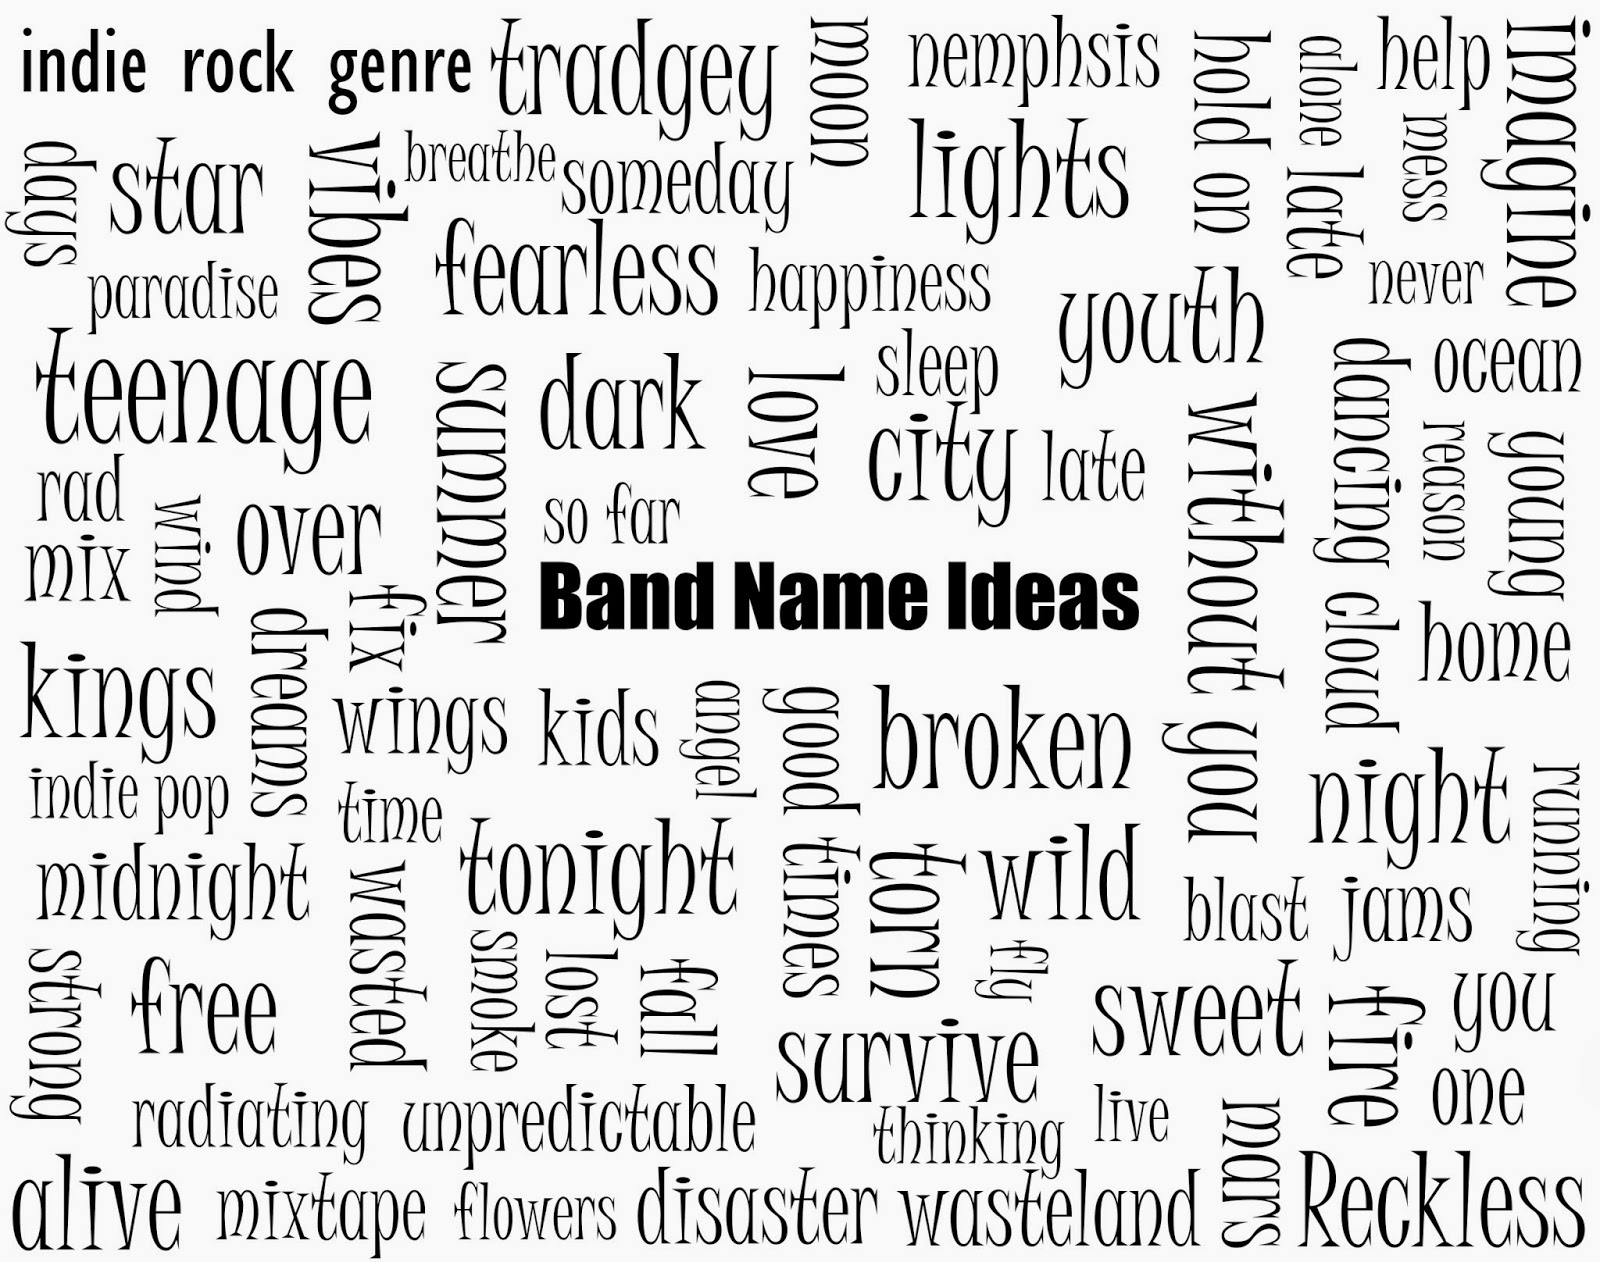 10 Best Band Name Ideas For Rock a2 media december 2013